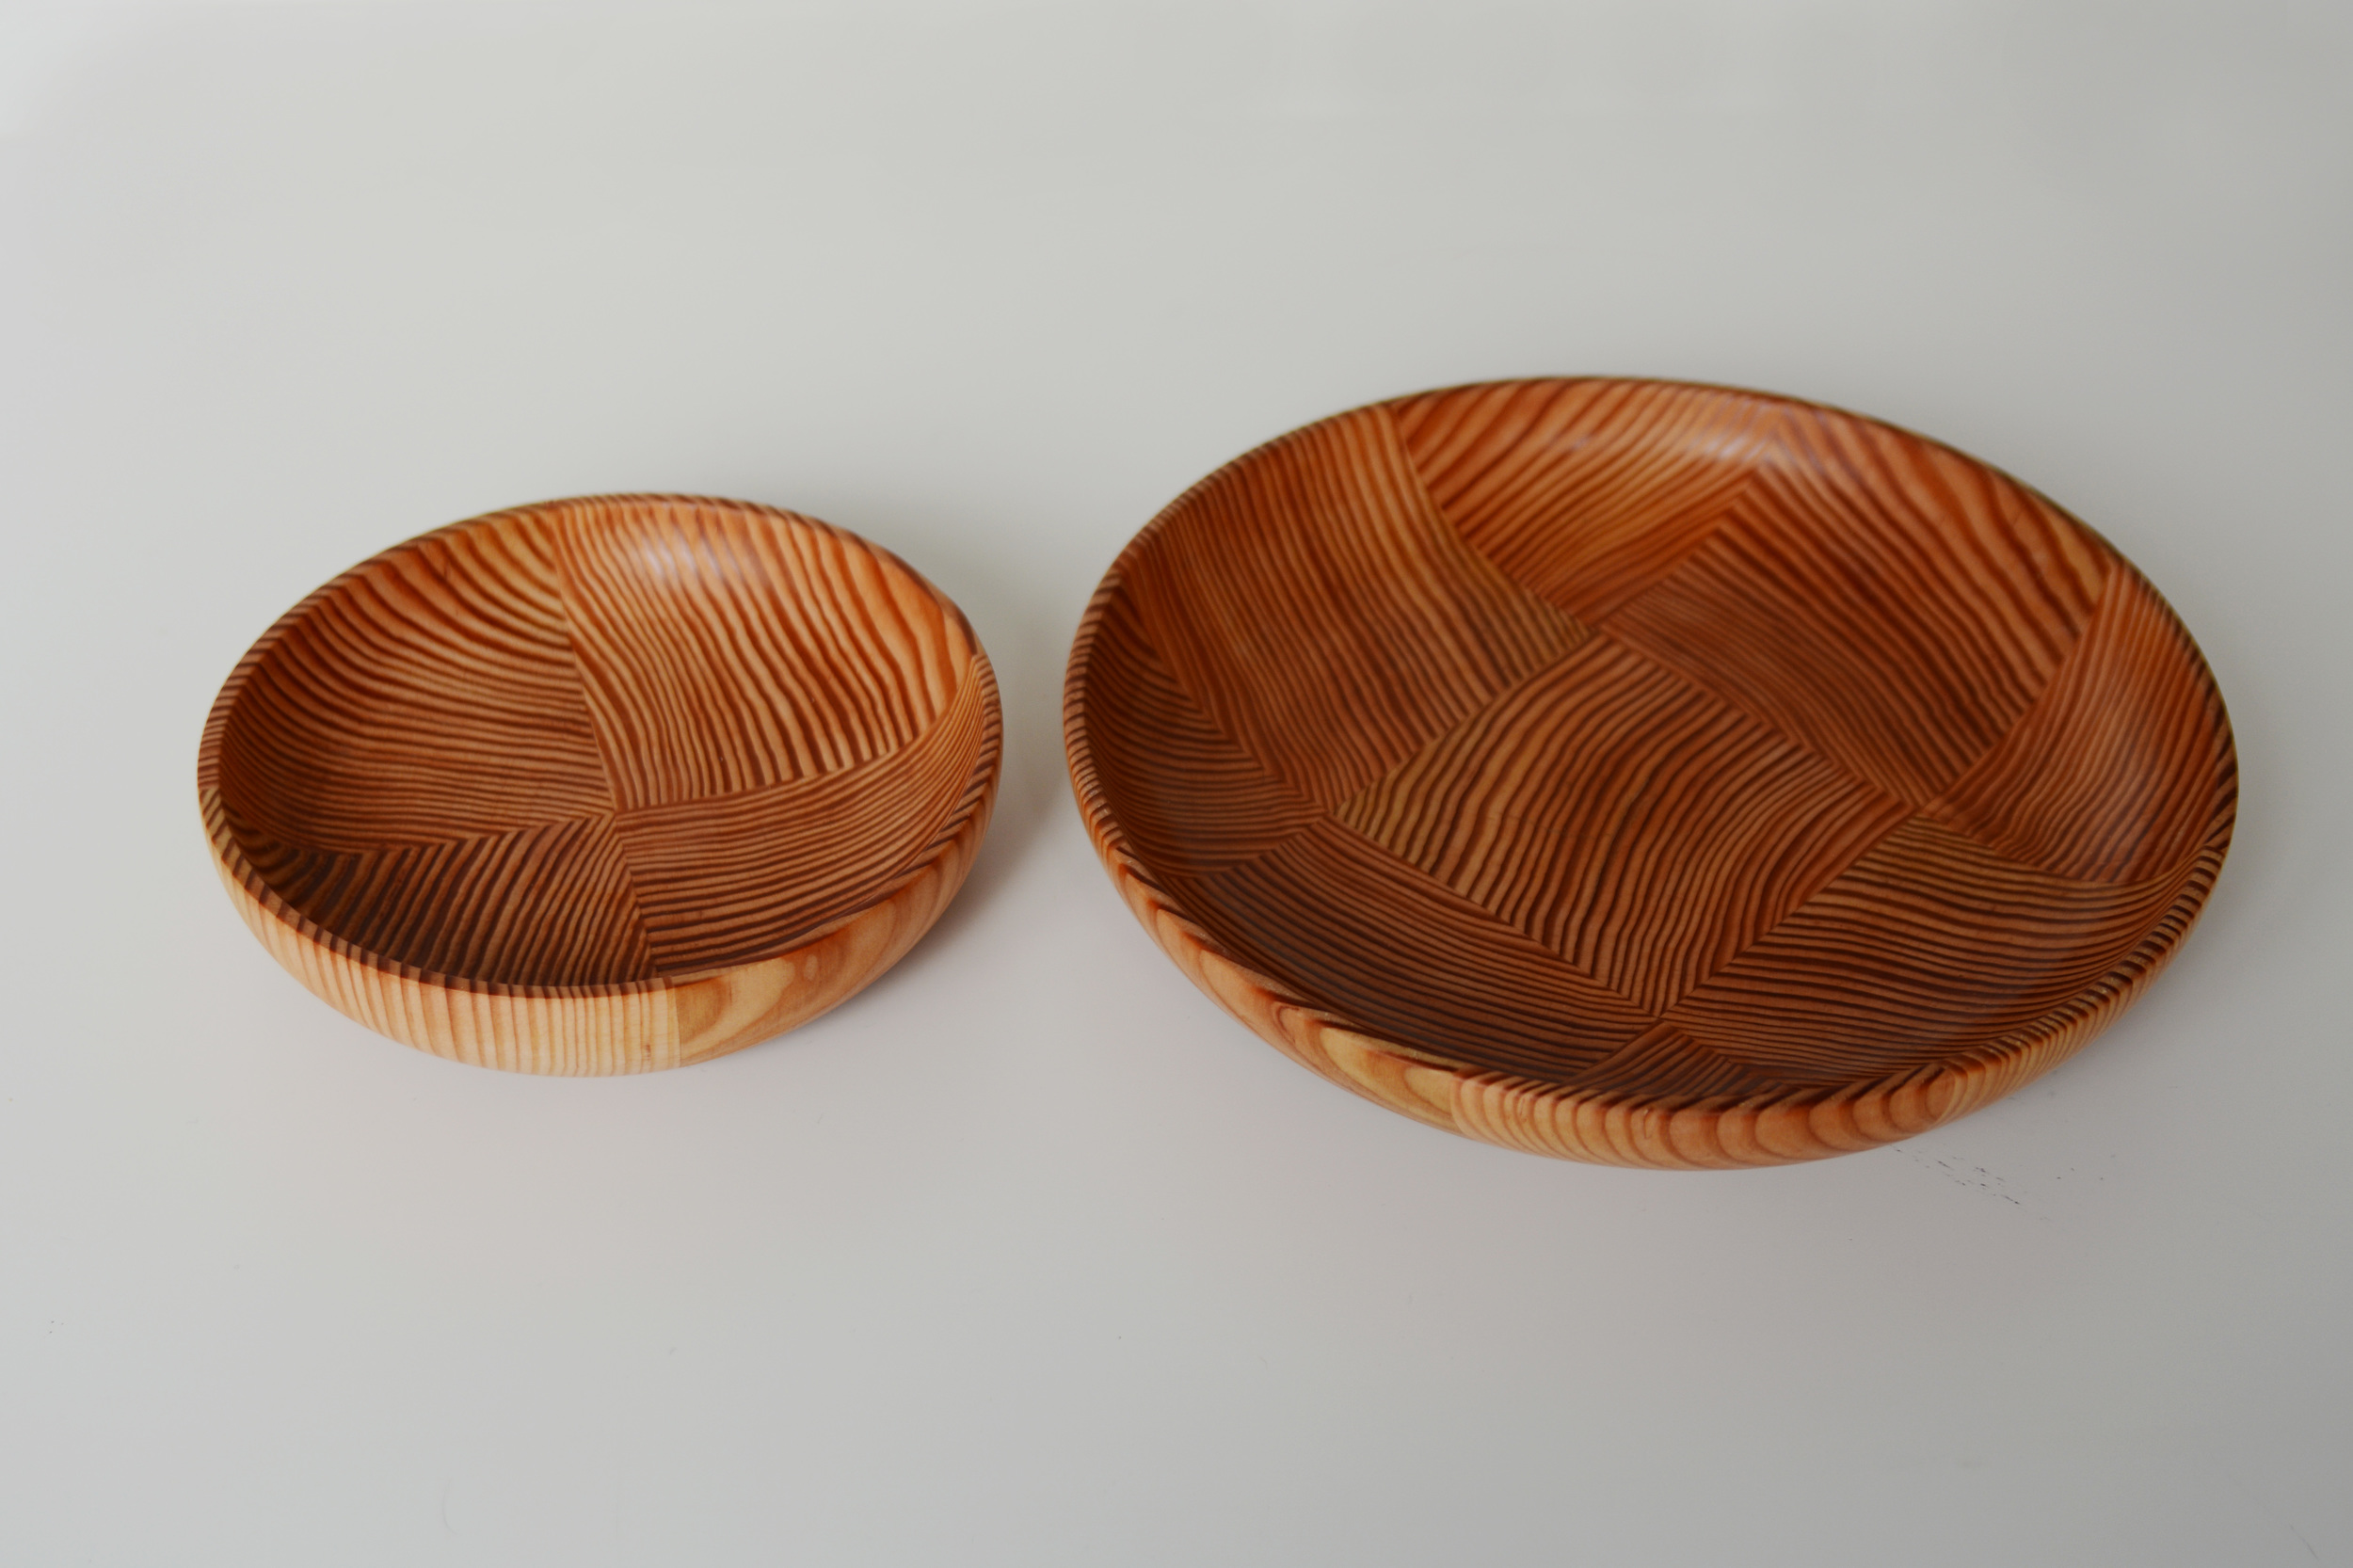 plates: dagulas fir  pactched vertically to show the ring growth.